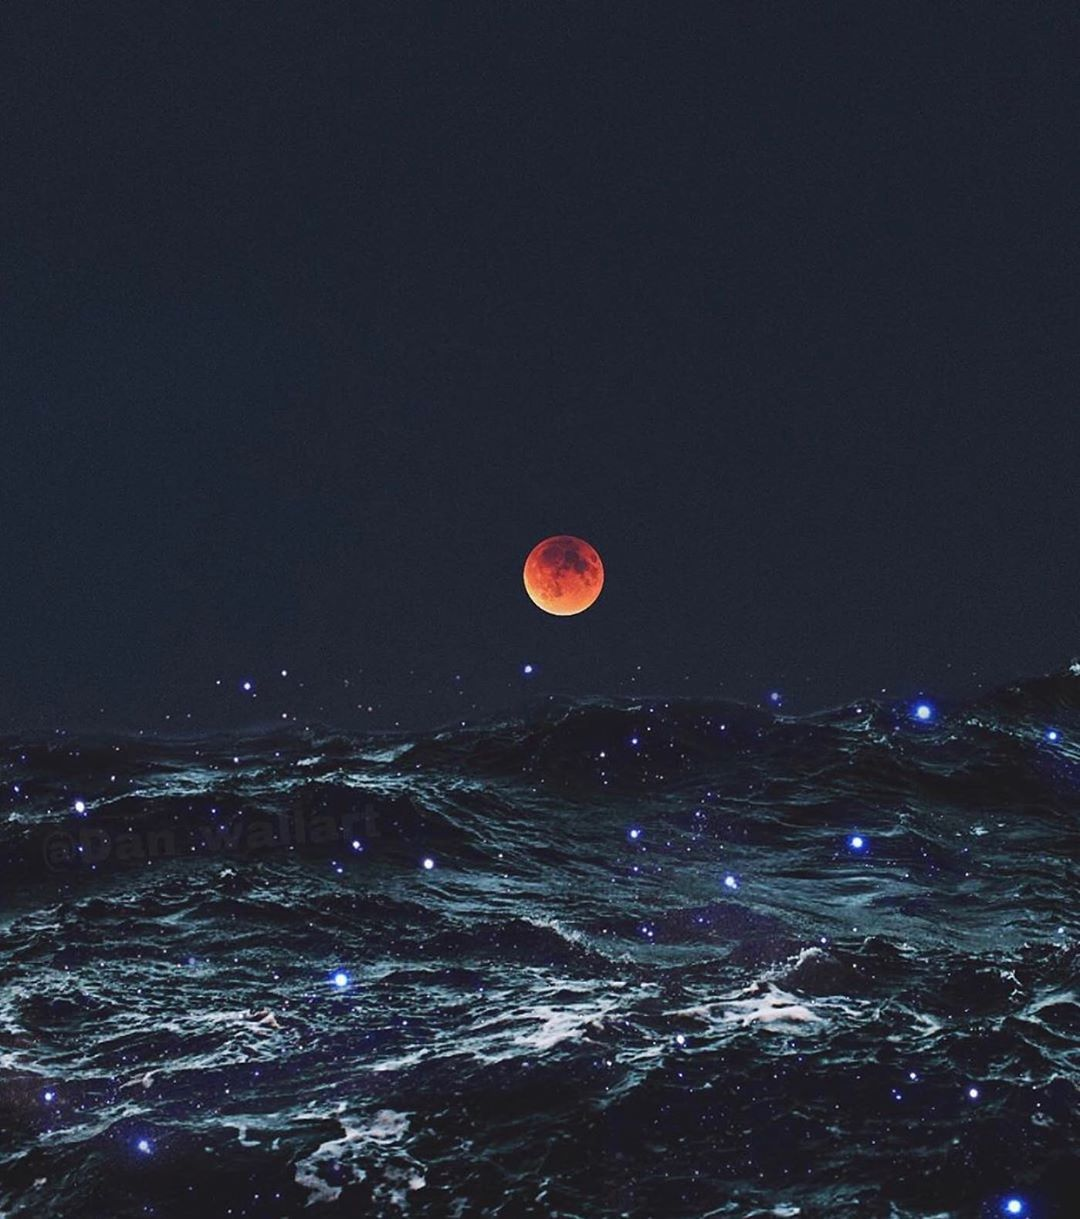 Get This Wallpaper & Much More! PHOTO BY space_lovers_